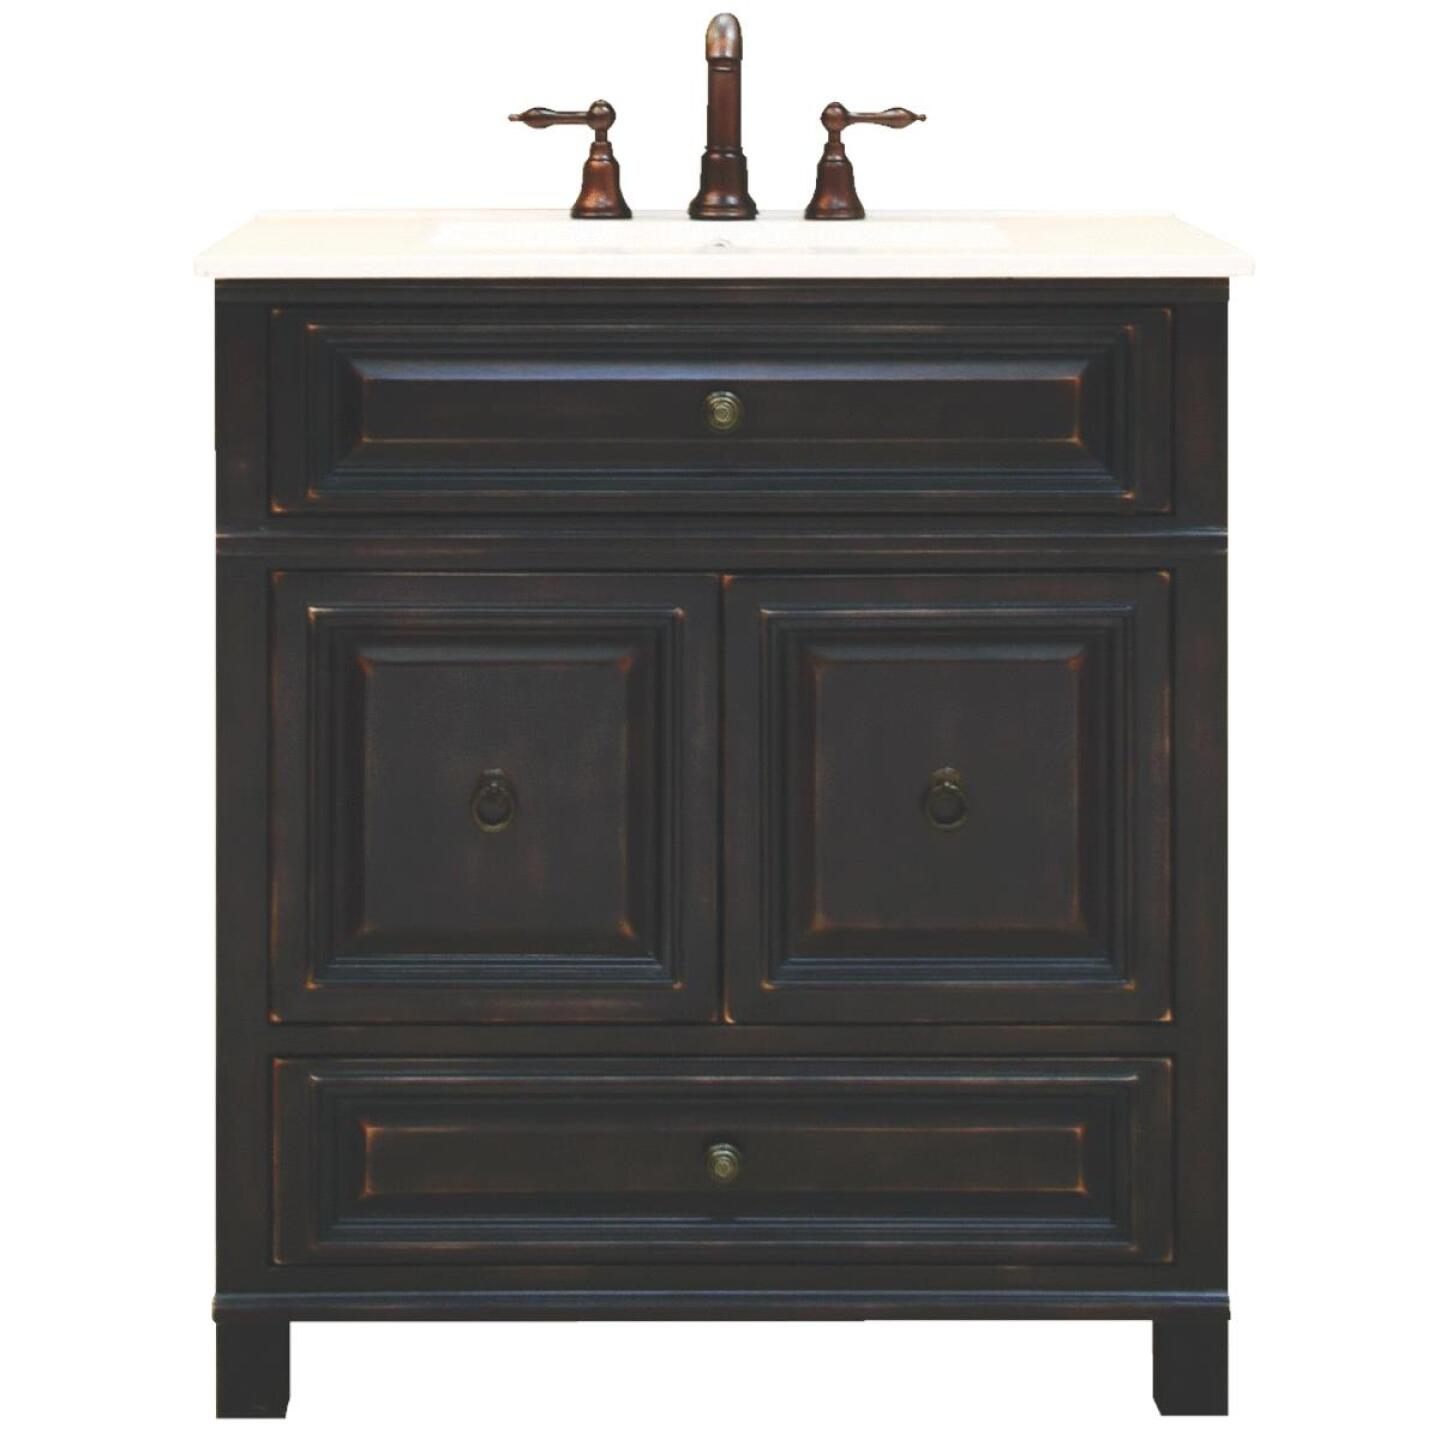 Sunny Wood Barton Hill Black Onyx 30 In. W x 34 In. H x 21 In. D Vanity Base, 2 Door/1 Drawer Image 210